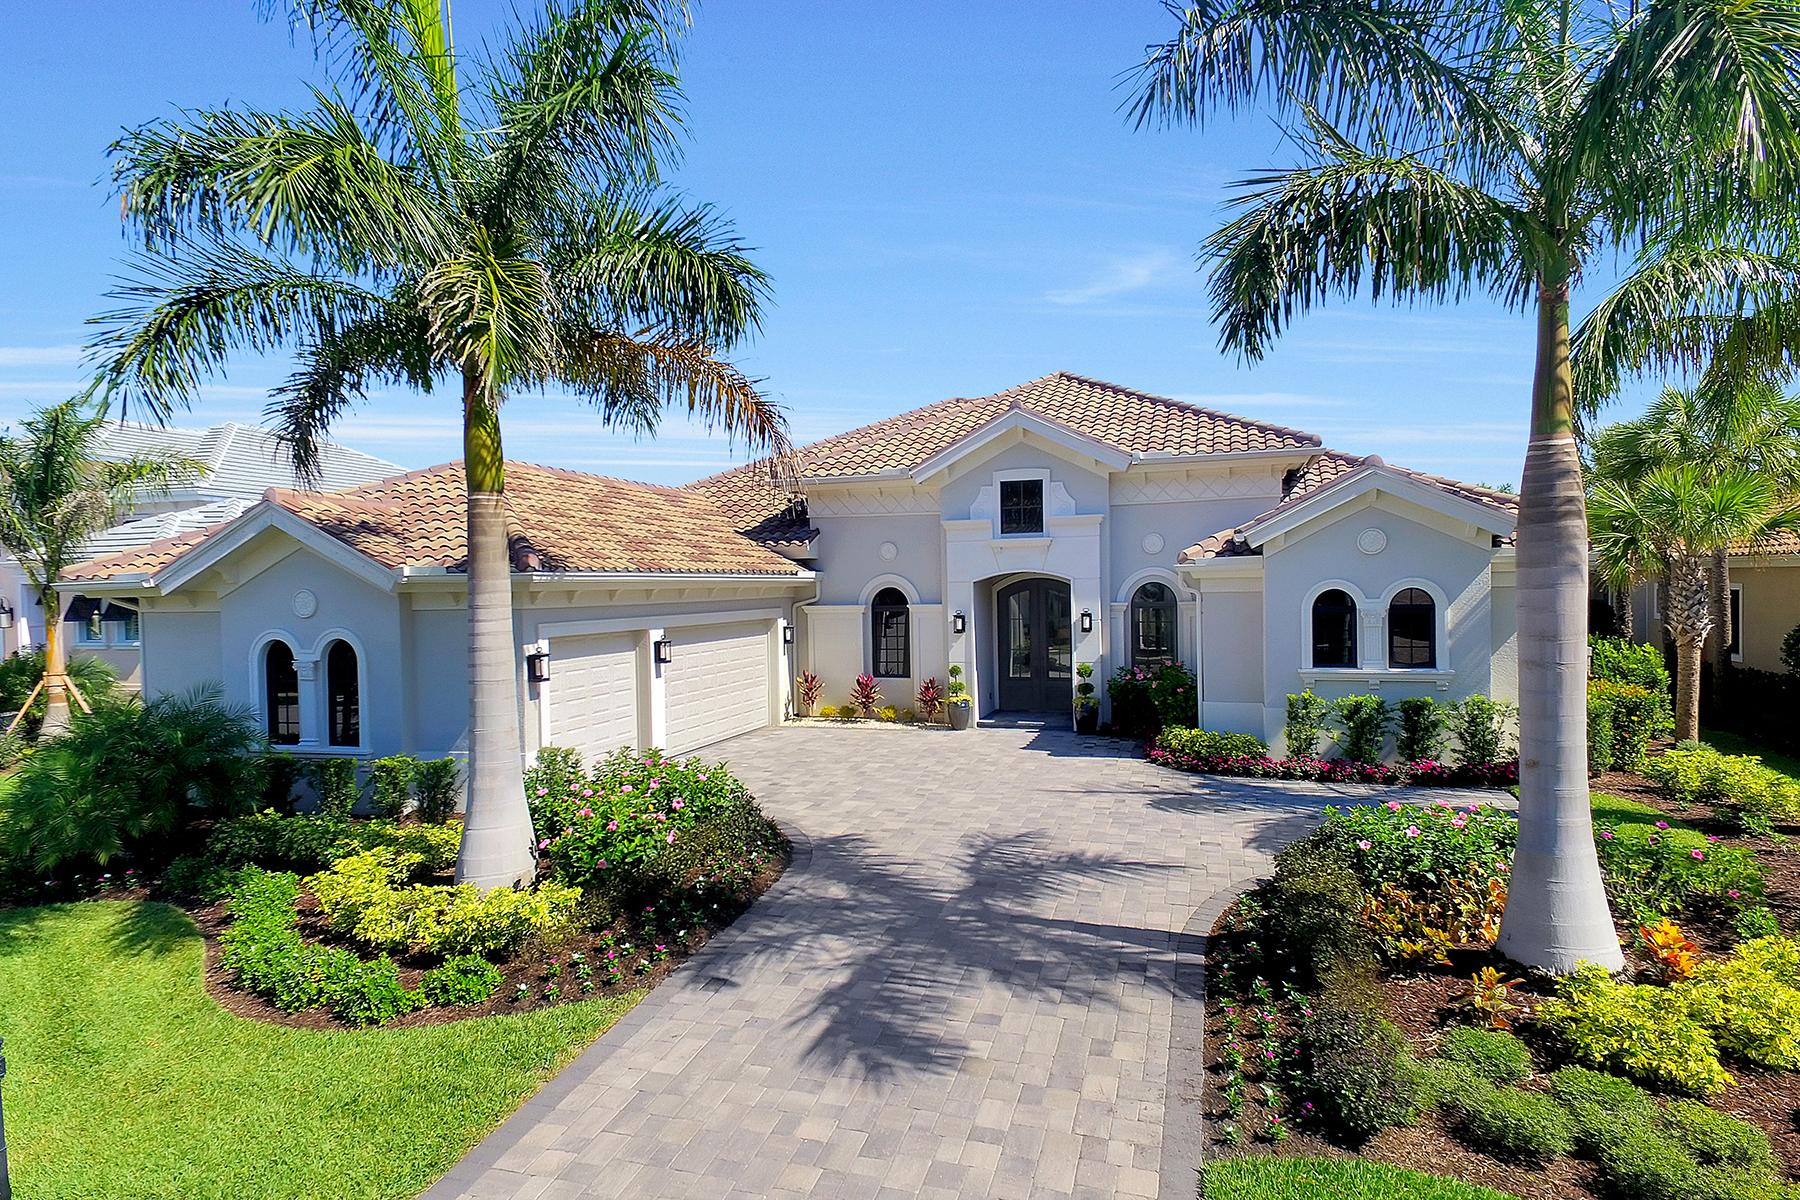 Single Family Home for Sale at FIDDLERS CREEK 3737 Mahogany Bend Dr, Naples, Florida 34114 United States